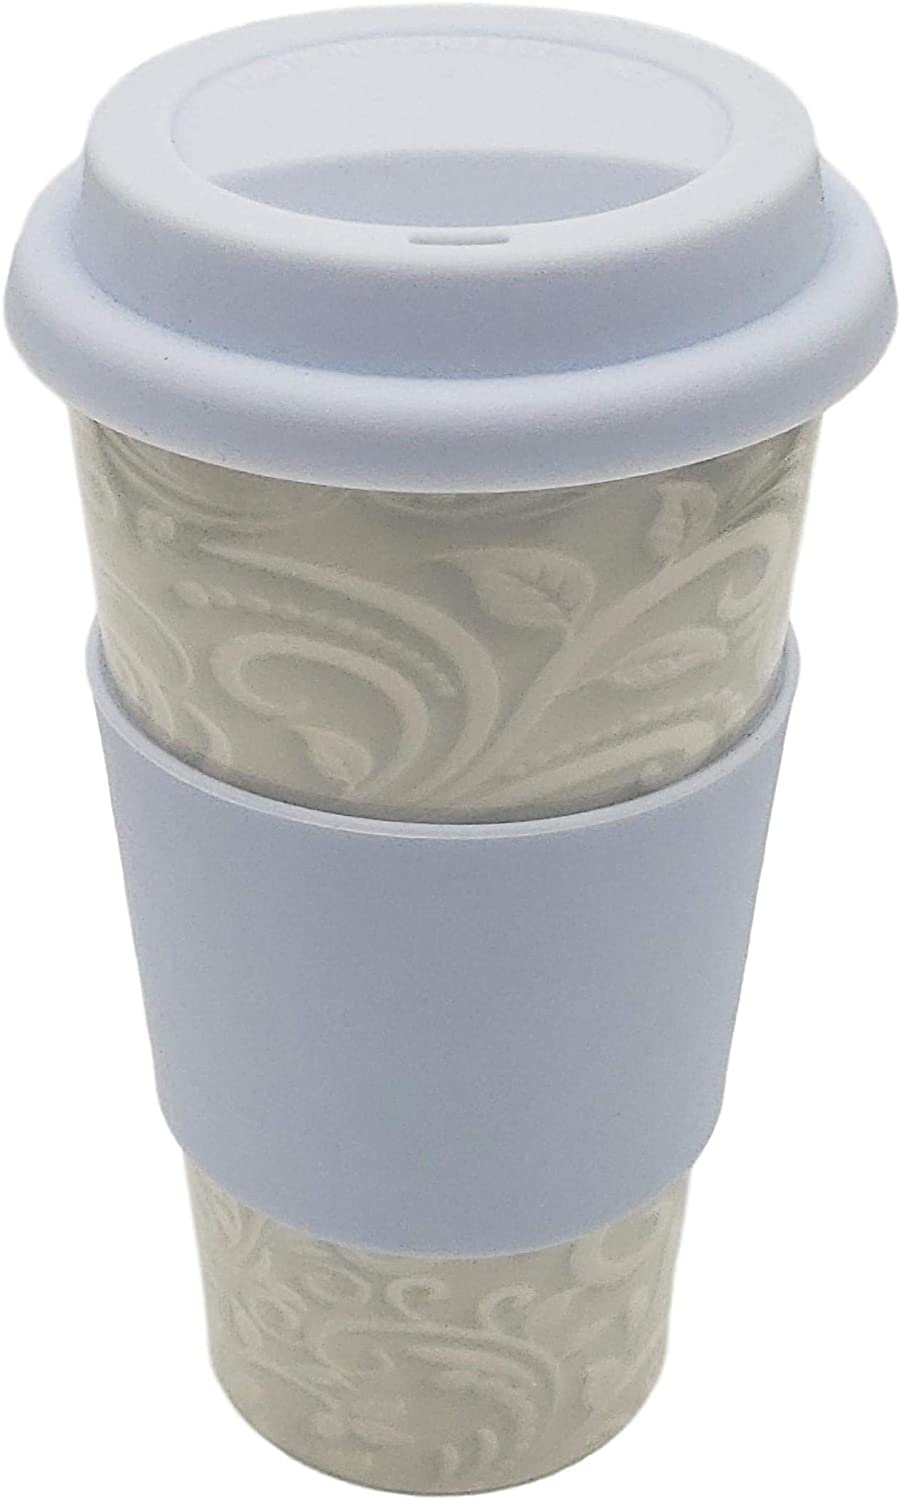 Upper Drawer 16 oz Ceramic Double Wall Insulated Travel Mug with 100% Silicone Lid (Light Paisley with Blue Lid)